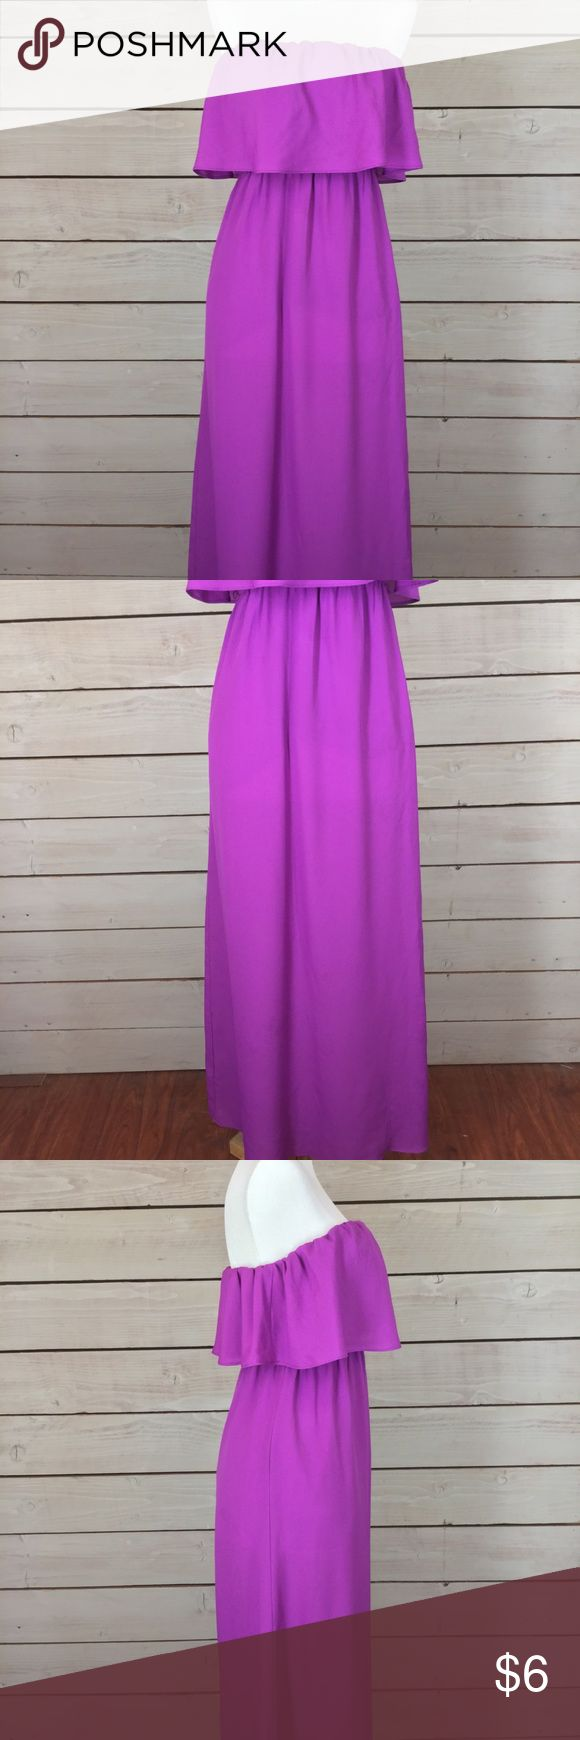 Forever 21 Purple Strapless Tube Maxi Dress Forever 21 Purple Strapless Tube Maxi Dress Size Small. $6 Young Professionals Club – Bundle any of my $6 listings for an unbeatable discount. I have handpicked office wear in excellent condition to build or expand your career wardrobe at an affordable price. Browse my listings and find a few items that you can use for work, school or interviews and I will give you a great deal with 1 shipping cost! Forever 21 Dresses Maxi